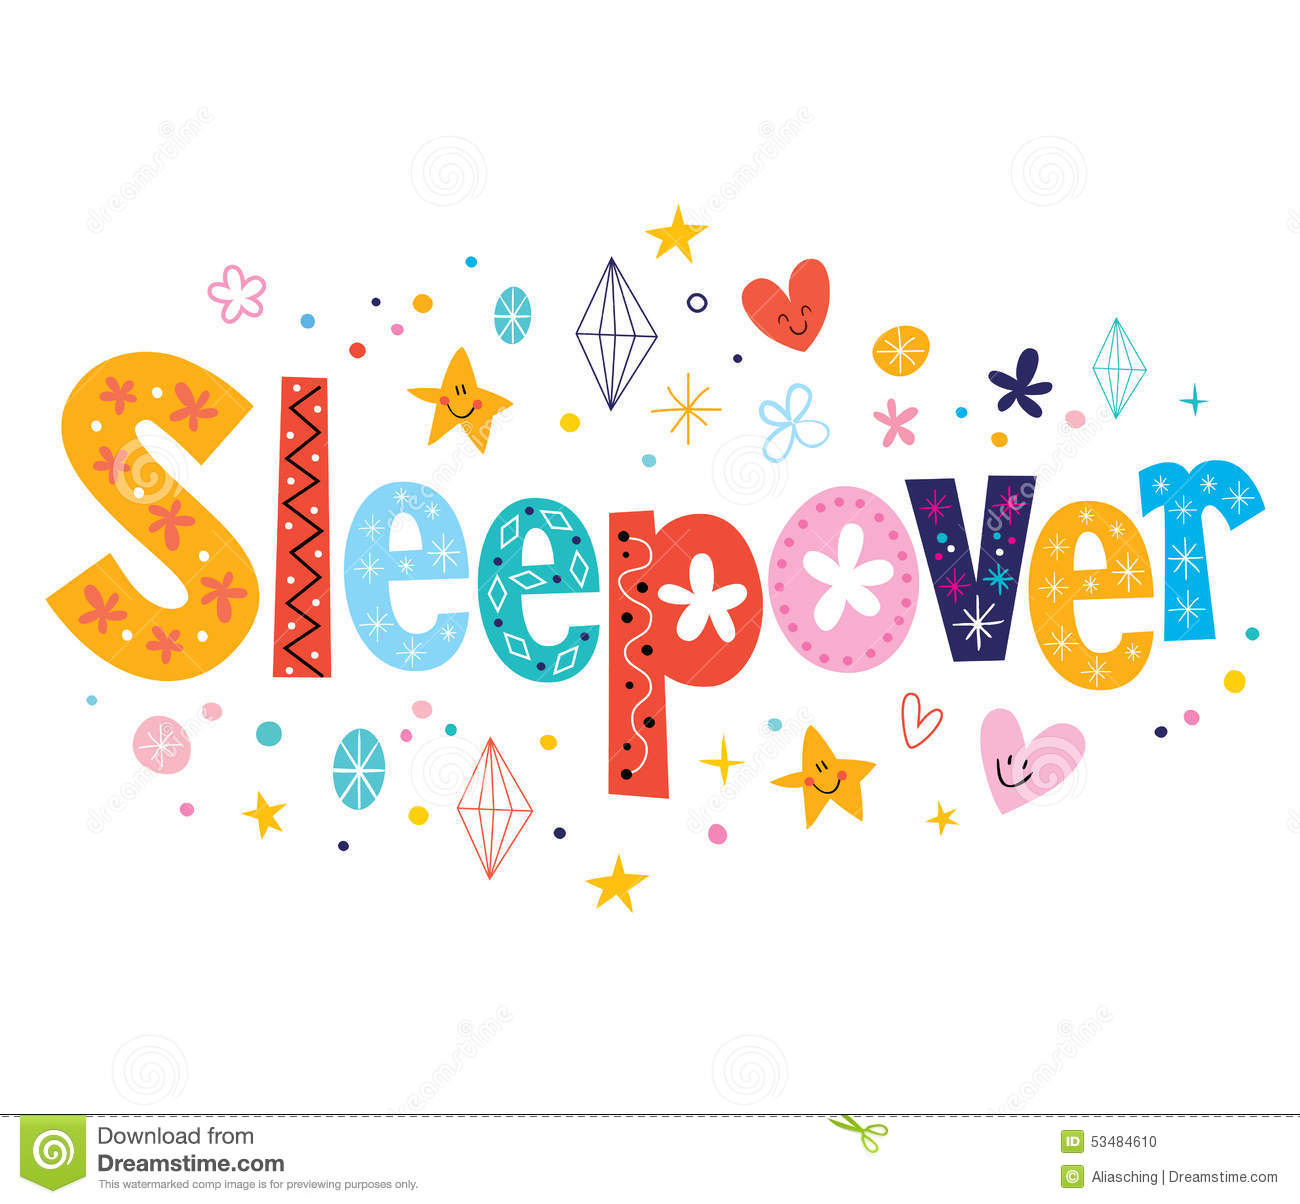 Sleepover Stock Illustrations.